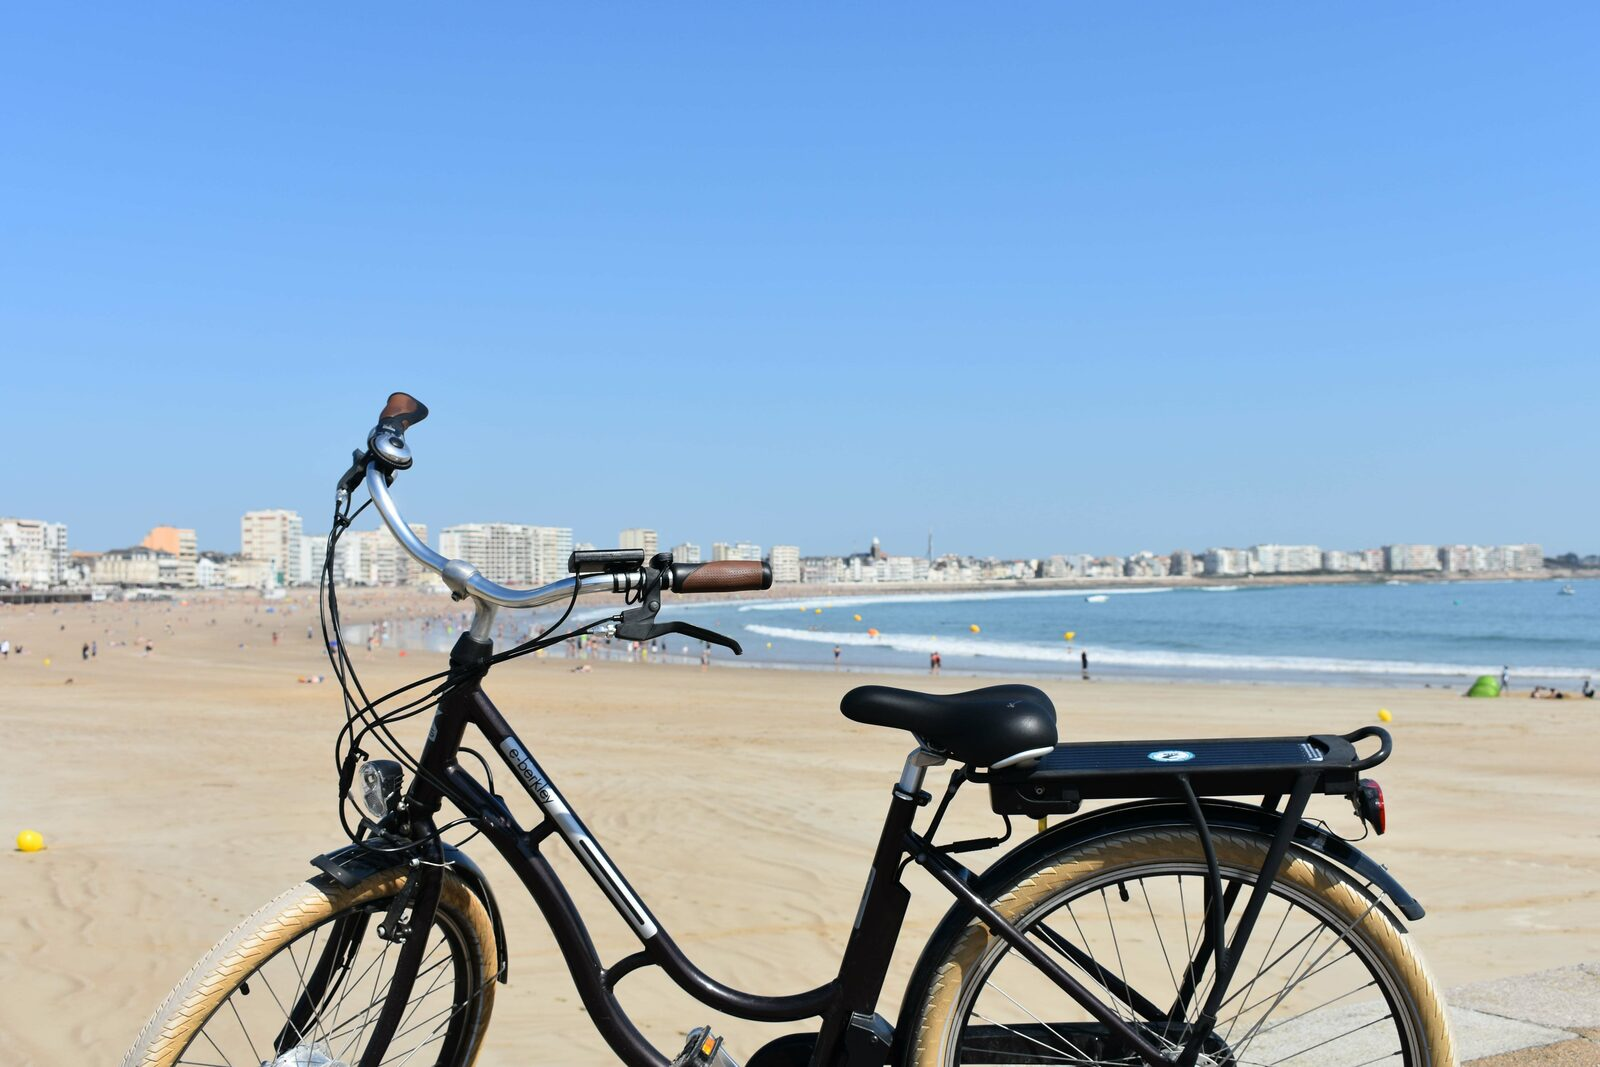 Bicycle rental